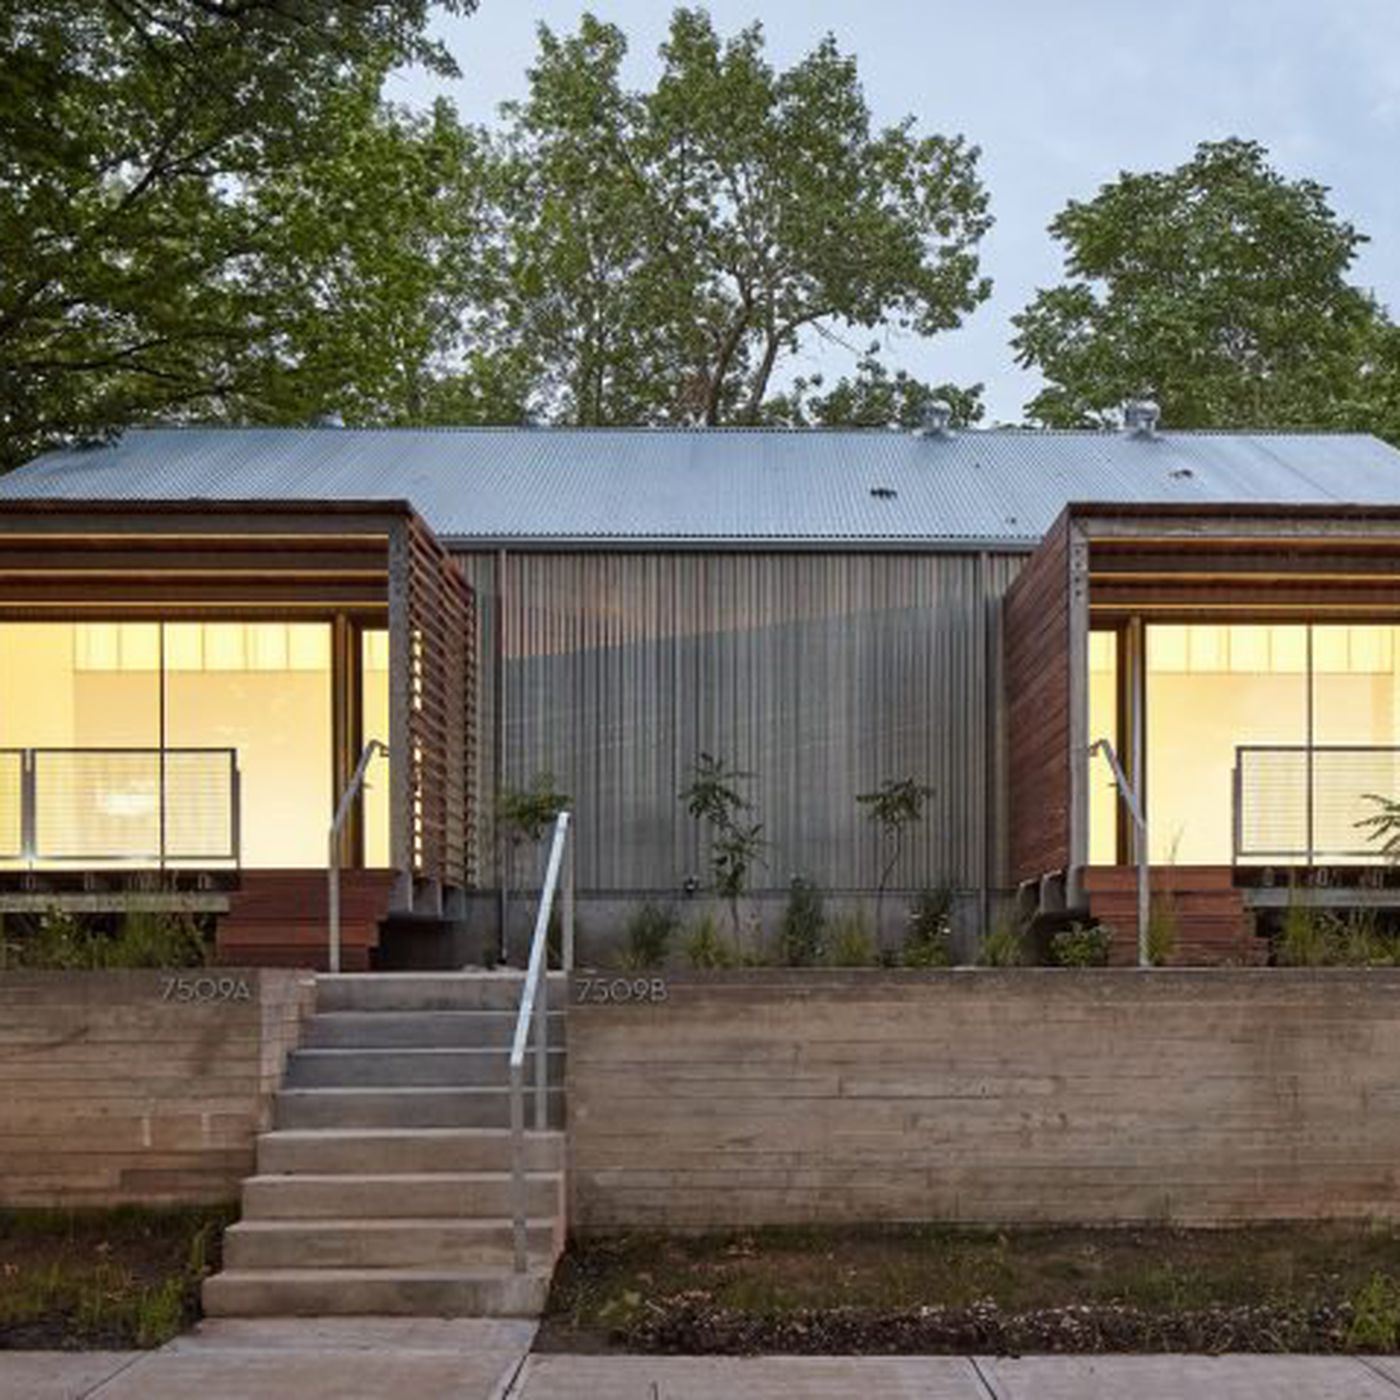 Architecture Students Build Modern Duplex For Low Income